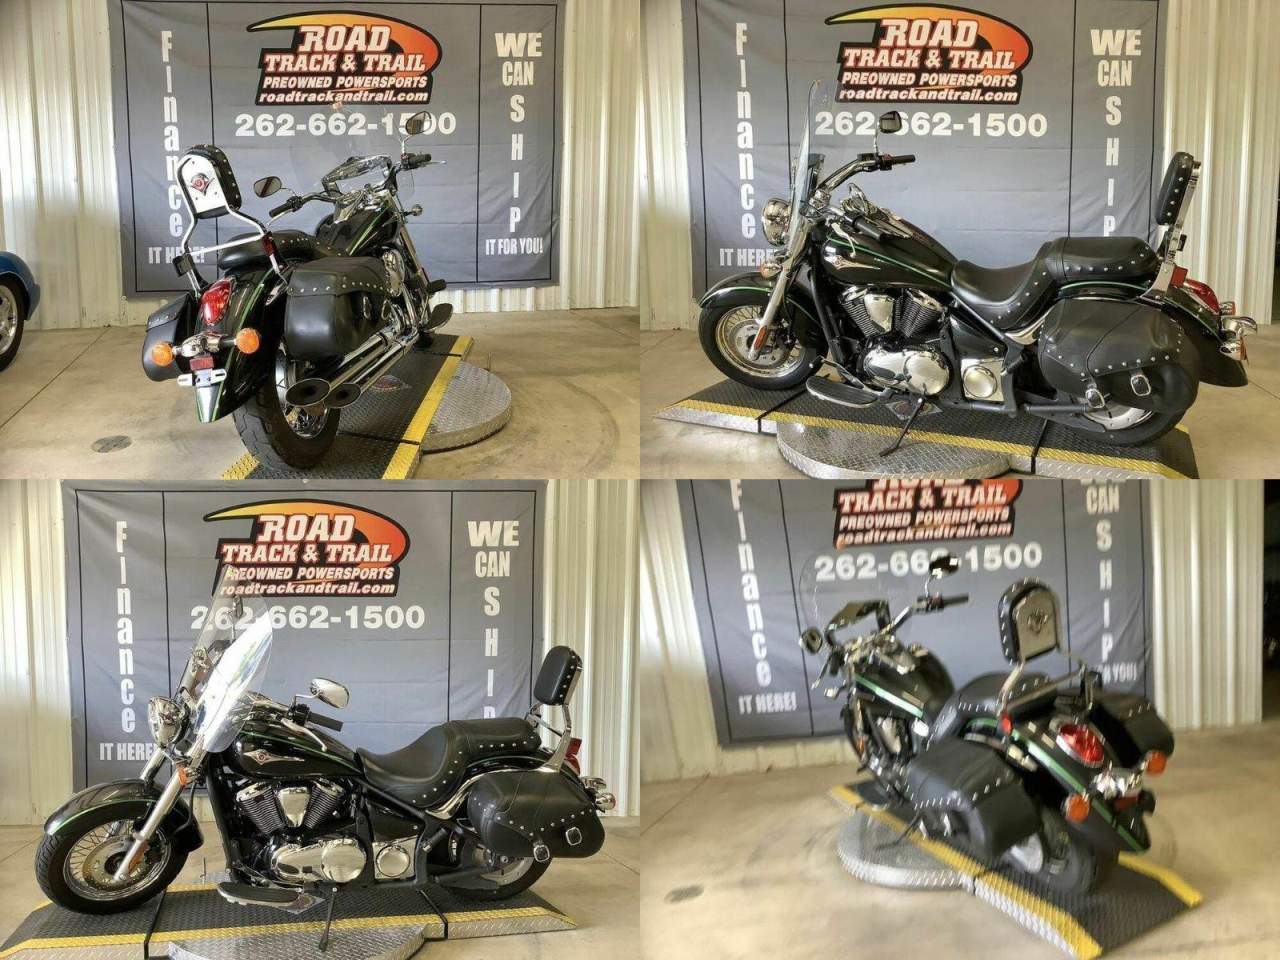 2015 Kawasaki Vulcan® 900 Classic LT Green used for sale near me